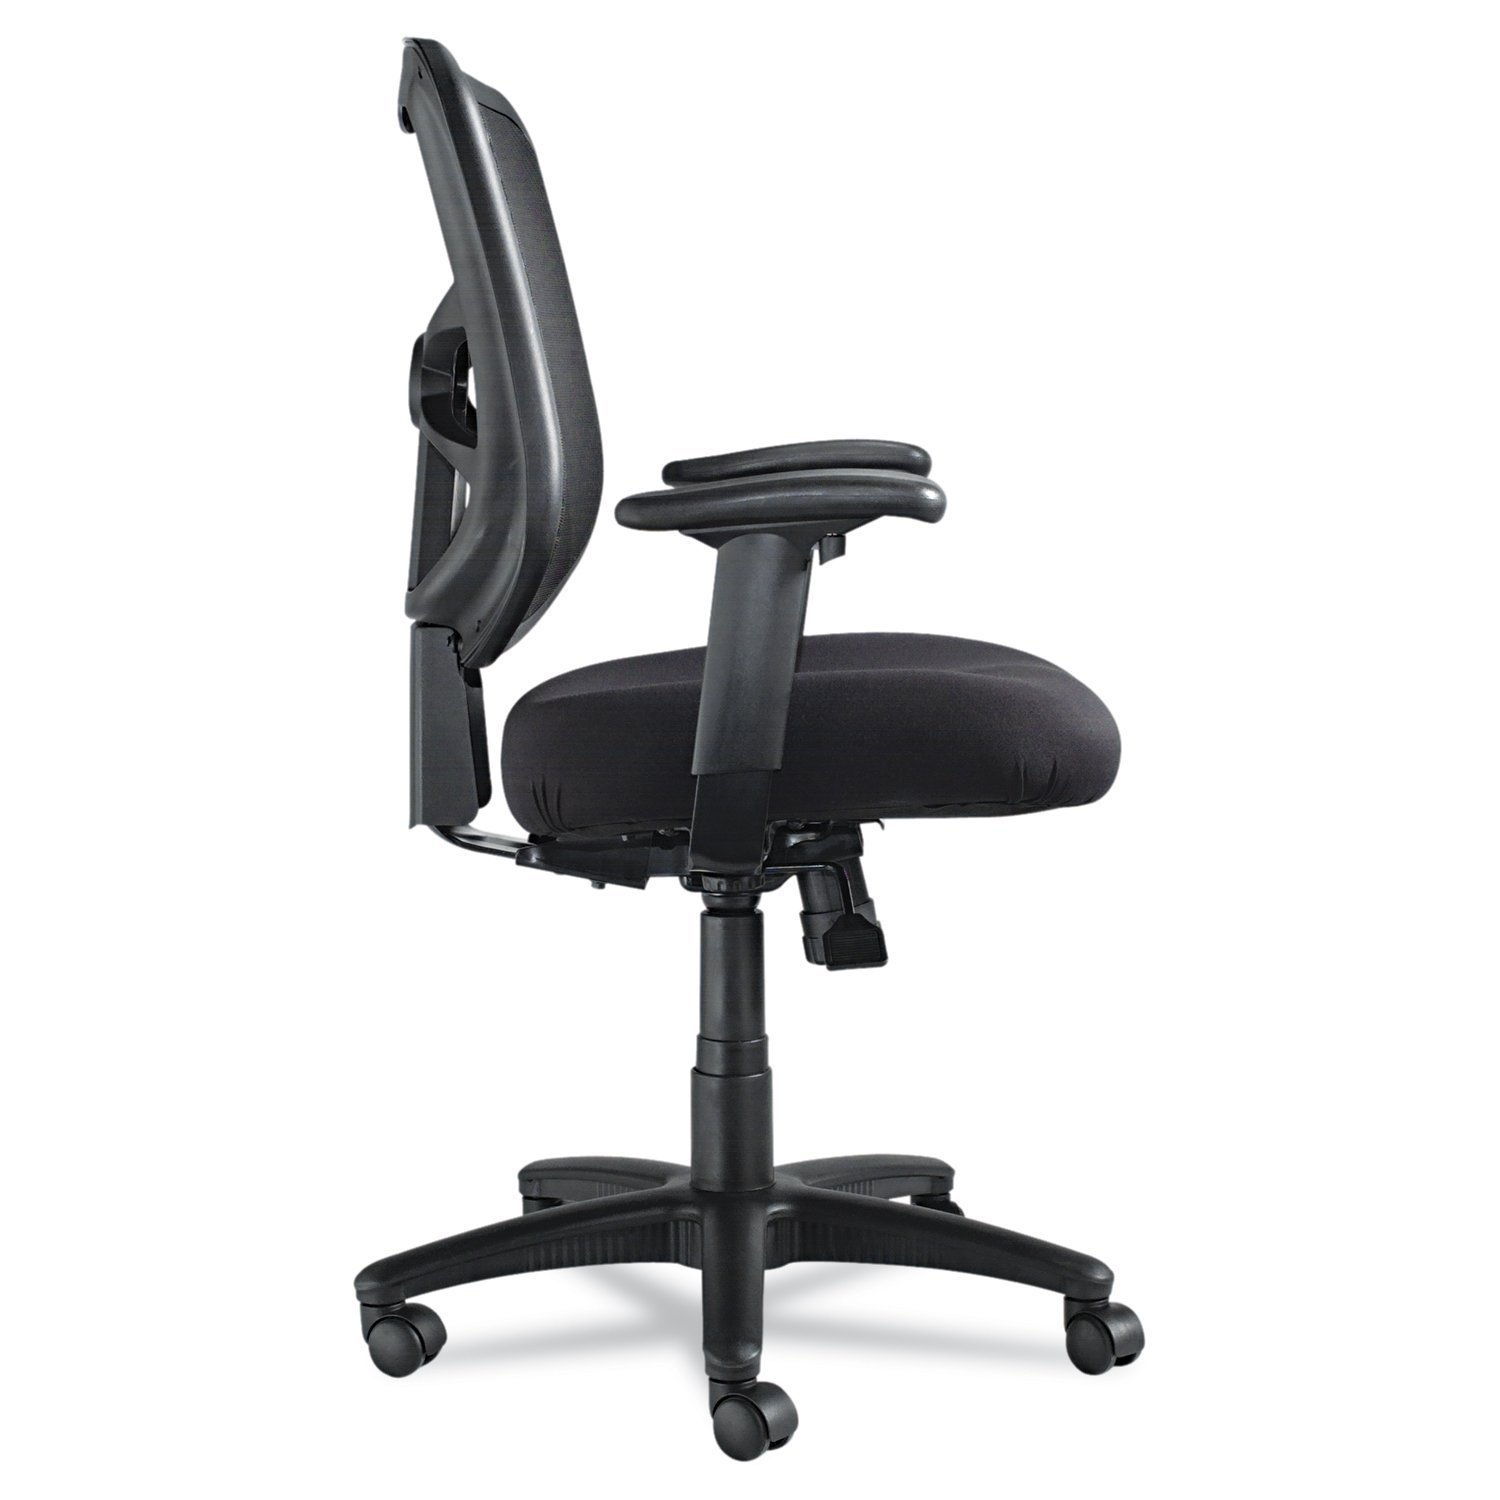 Office chair back view - Amazon Com Alera Elusion Series Mesh Mid Back Swivel Tilt Chair Black Kitchen Dining